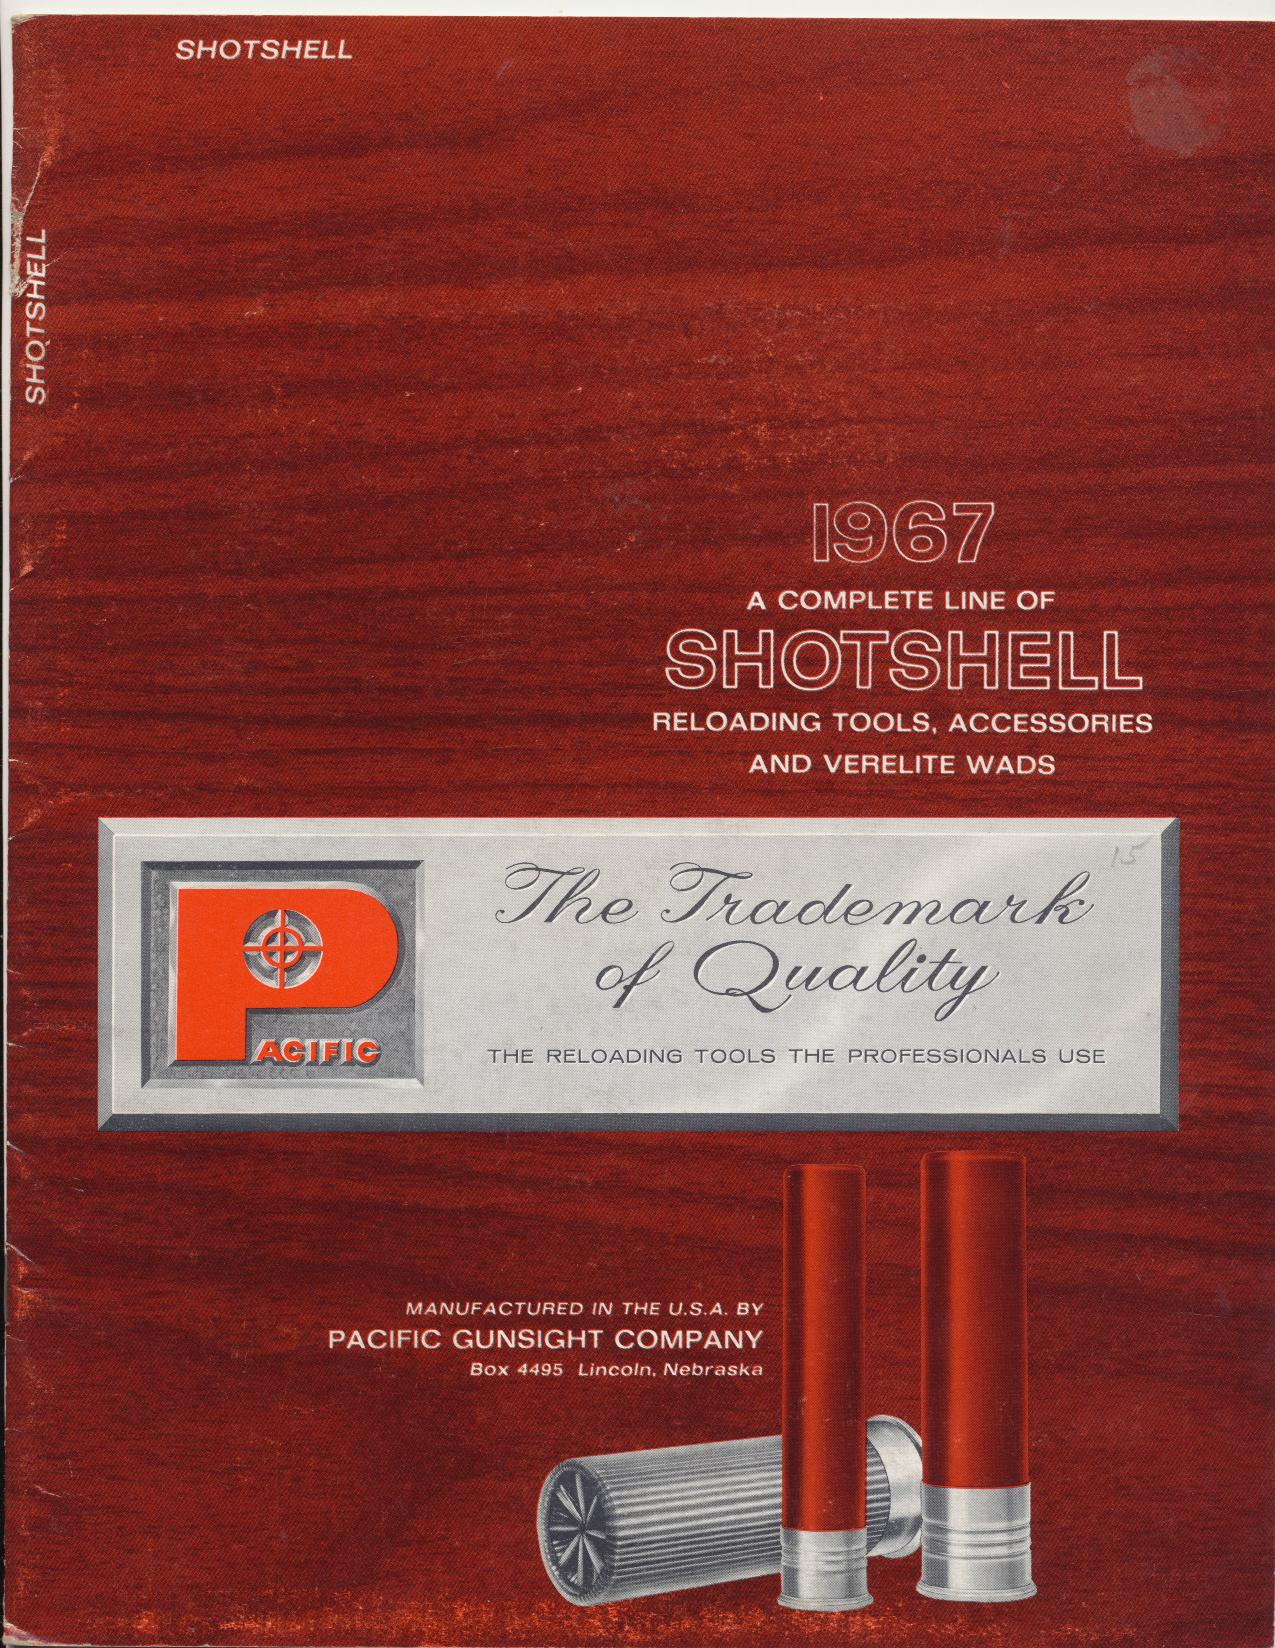 1967 Pacific Gunsight Shotshell Reloading Dealer Trade Catalog